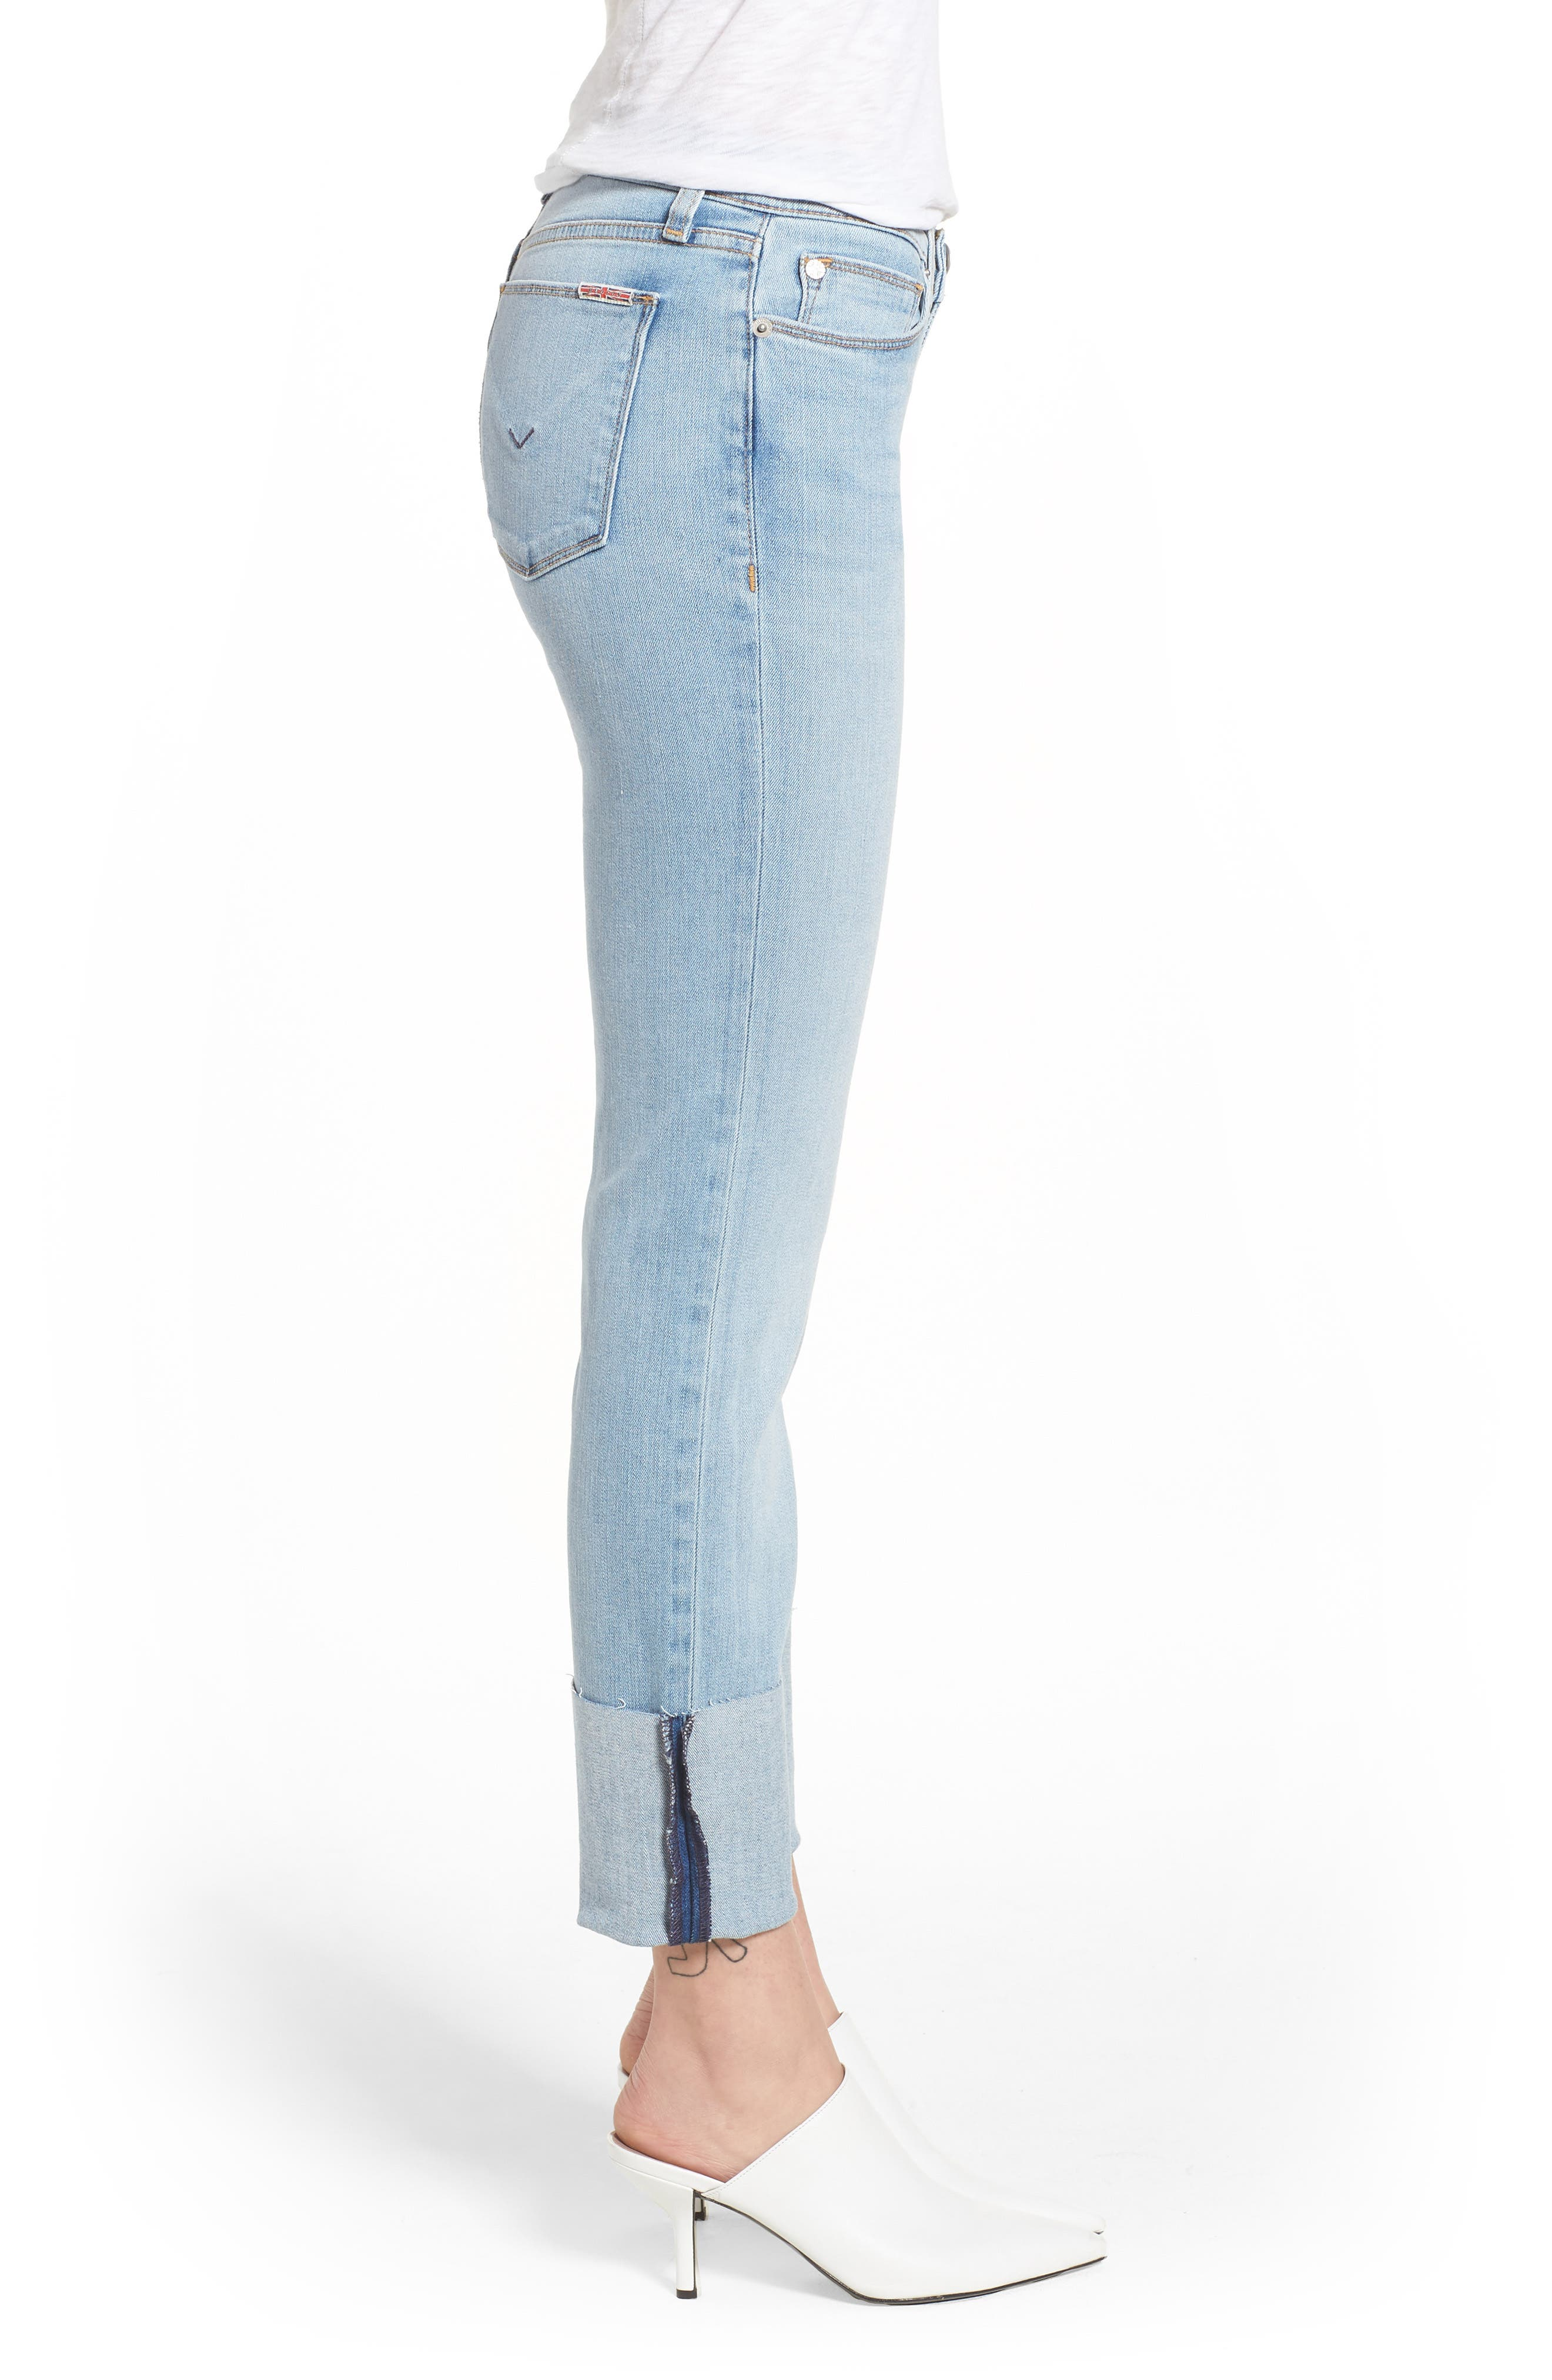 Tally Cuffed Crop Skinny Jeans,                             Alternate thumbnail 10, color,